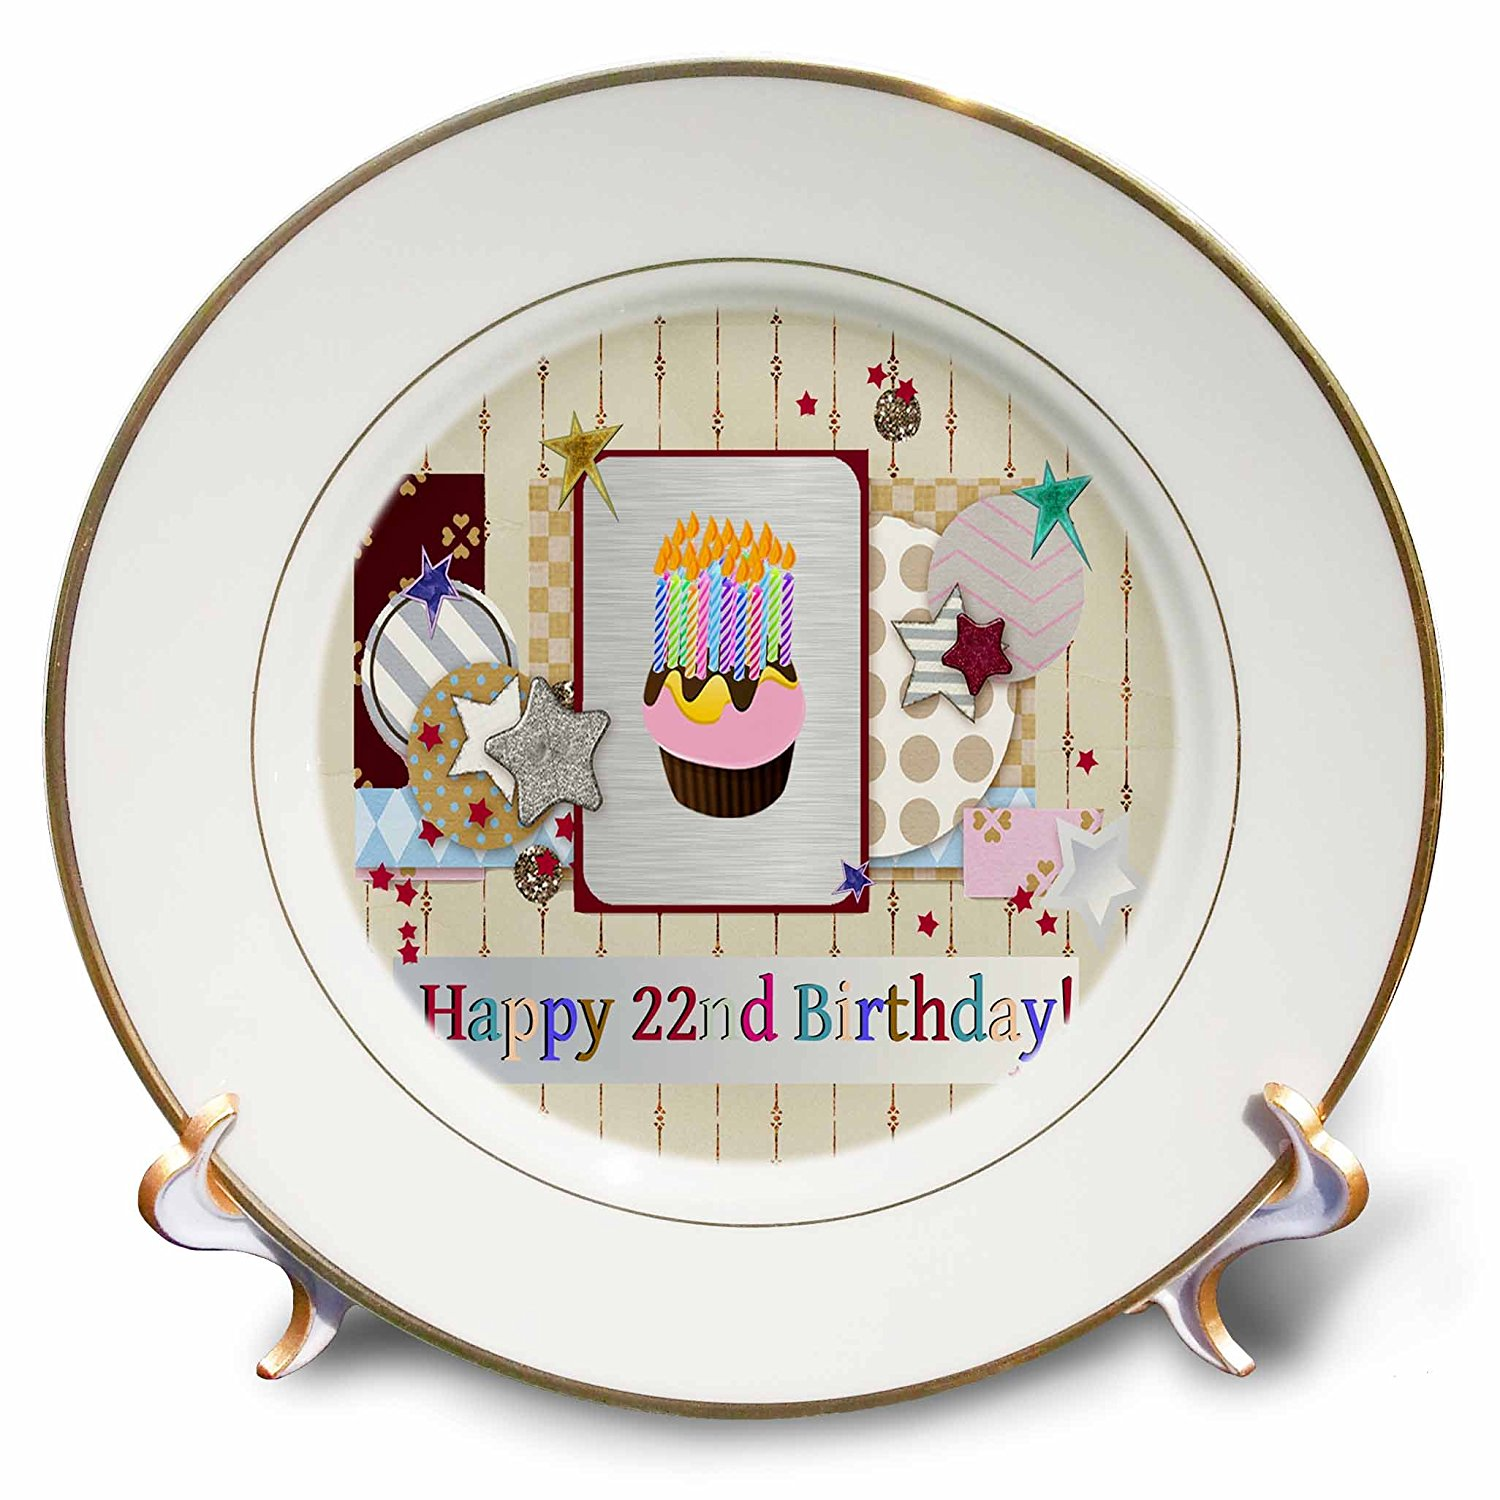 Beverly Turner Birthday Design - Collage of Stars, Cupcake, and Candle, Happy 22nd Birthday - 8 inch Porcelain Plate (cp_243654_1)